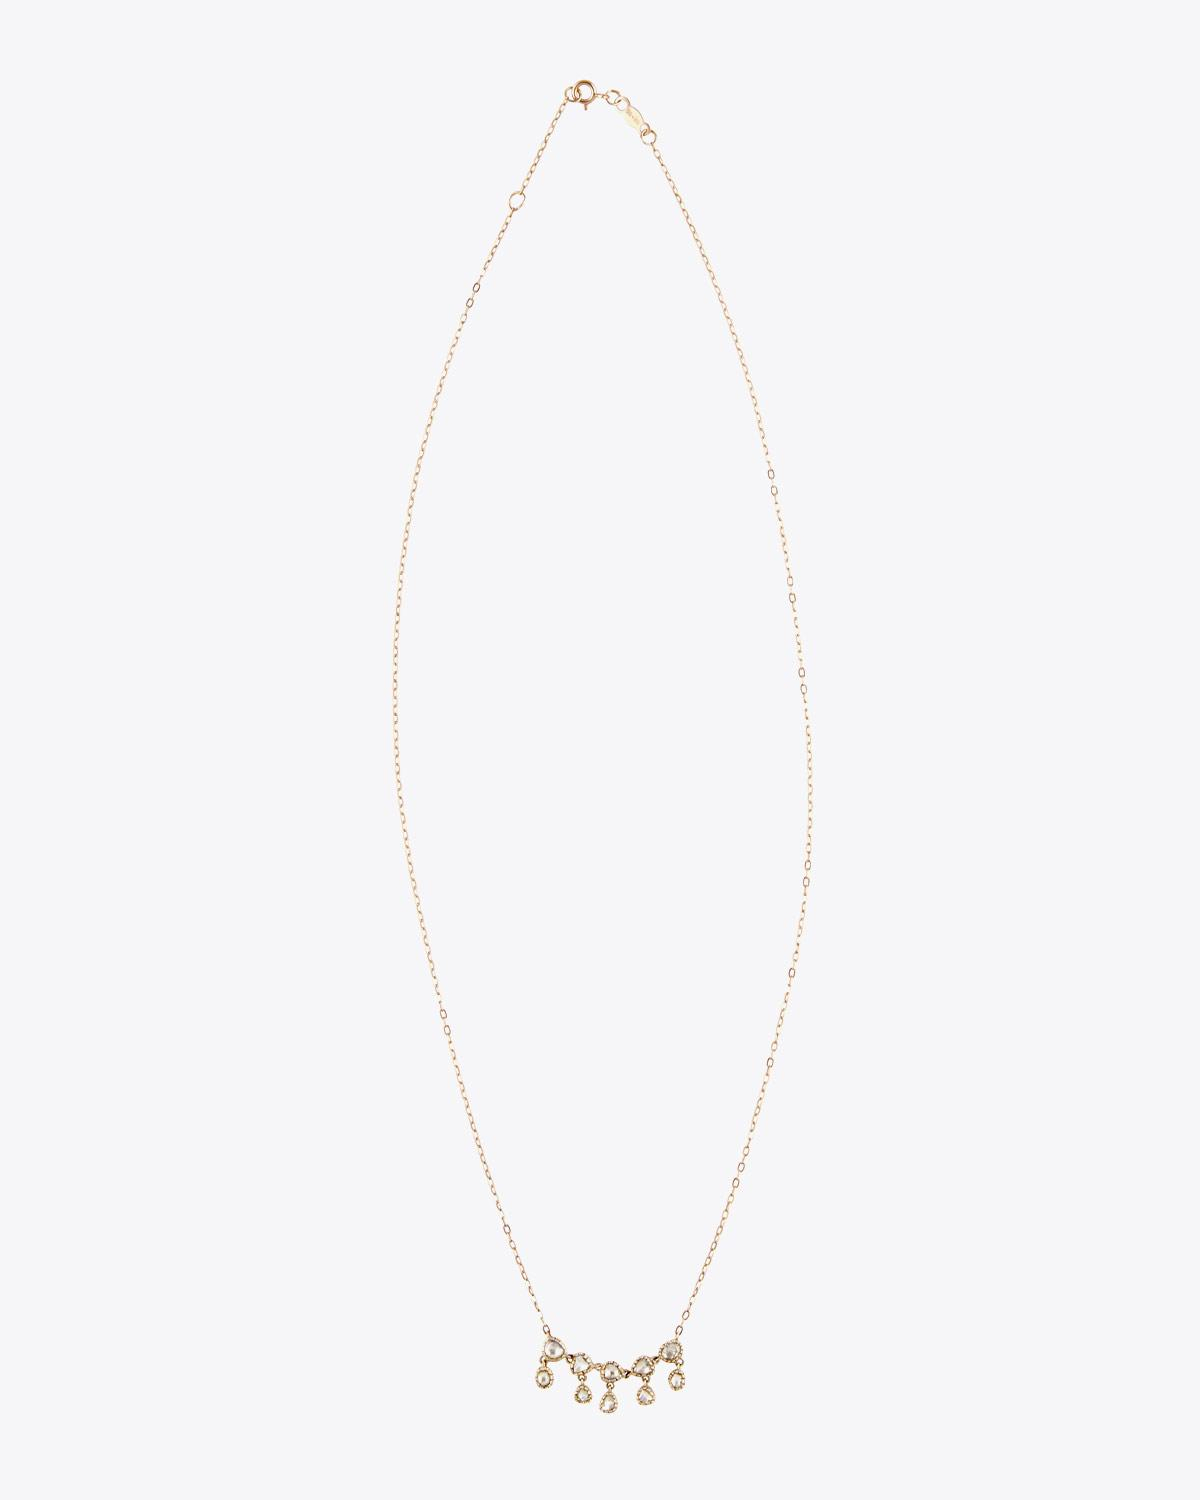 Pascale Monvoisin Lara N°1 Collier Diamants